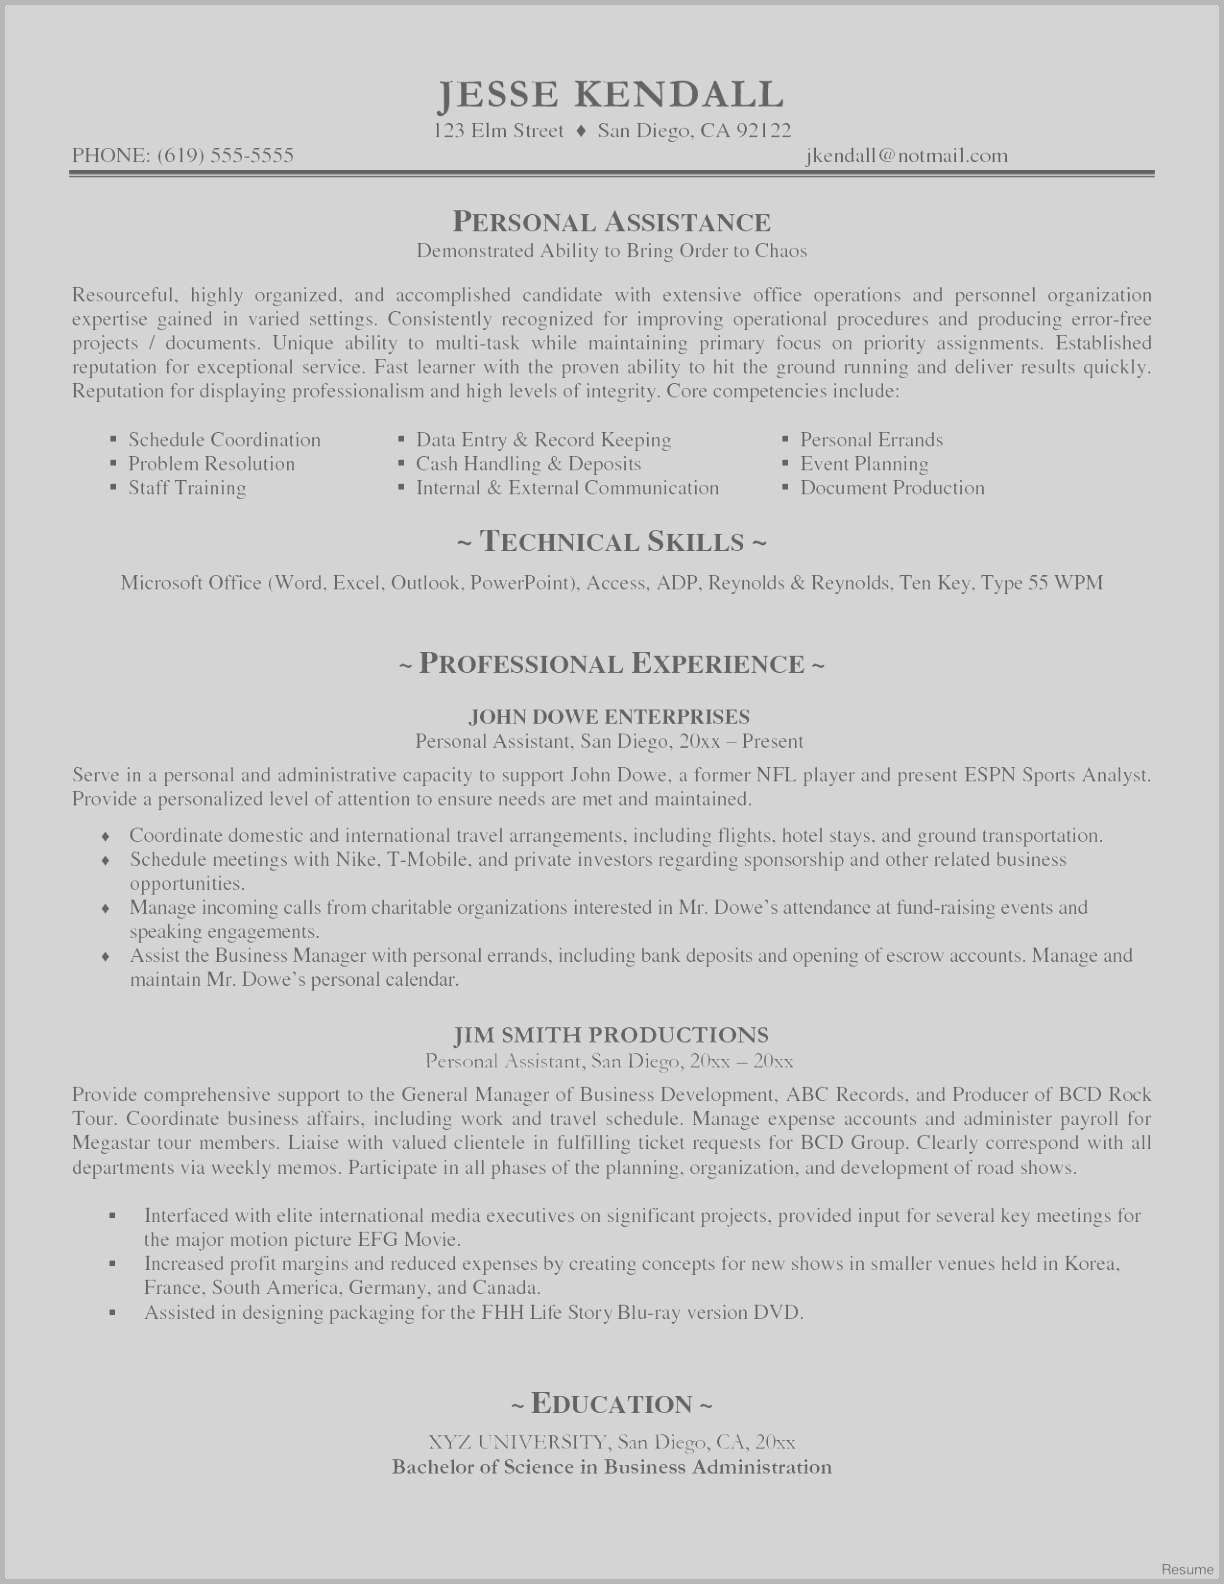 77 New Image Of Life Science Resume Examples Resume Examples Life Science Good Resume Examples